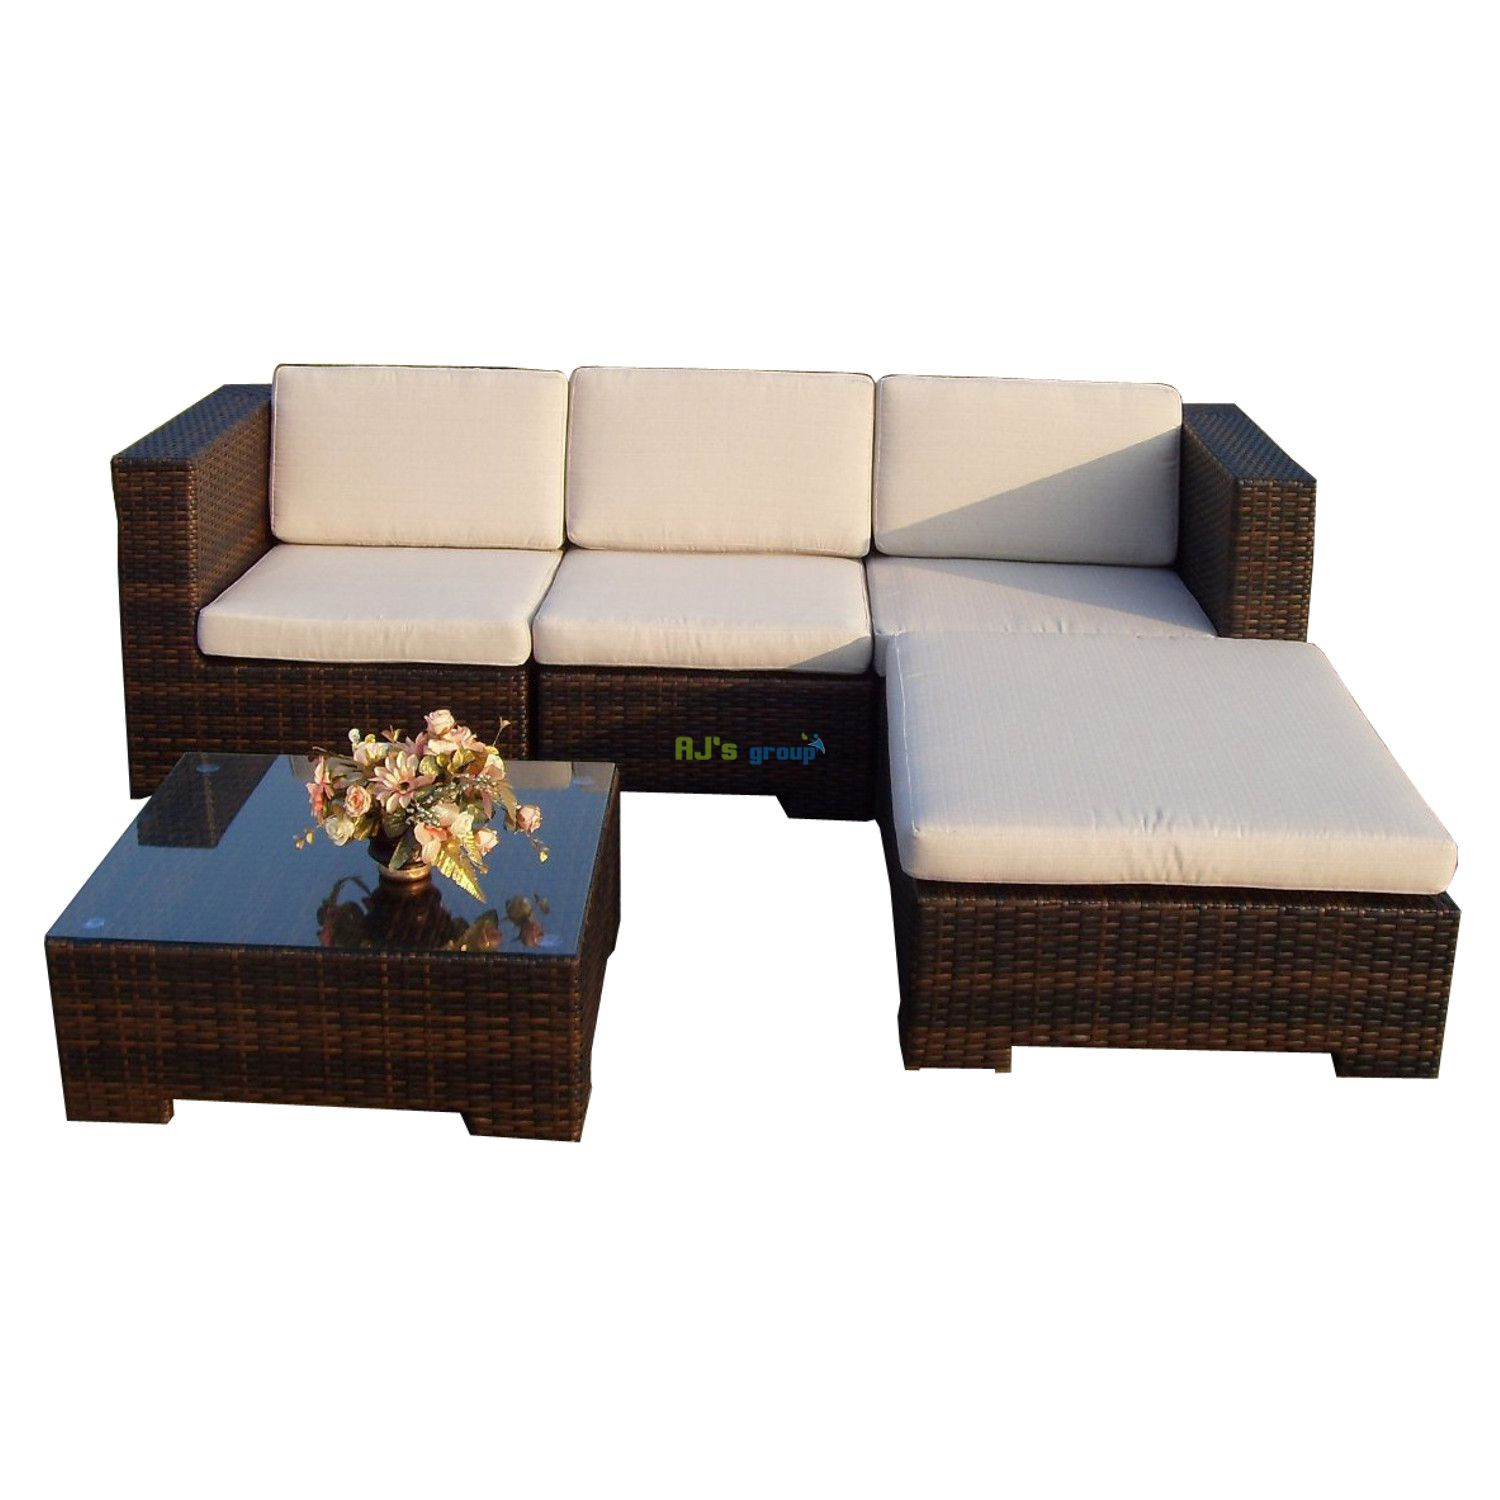 poly rattan gartenm bel california alu garnitur. Black Bedroom Furniture Sets. Home Design Ideas